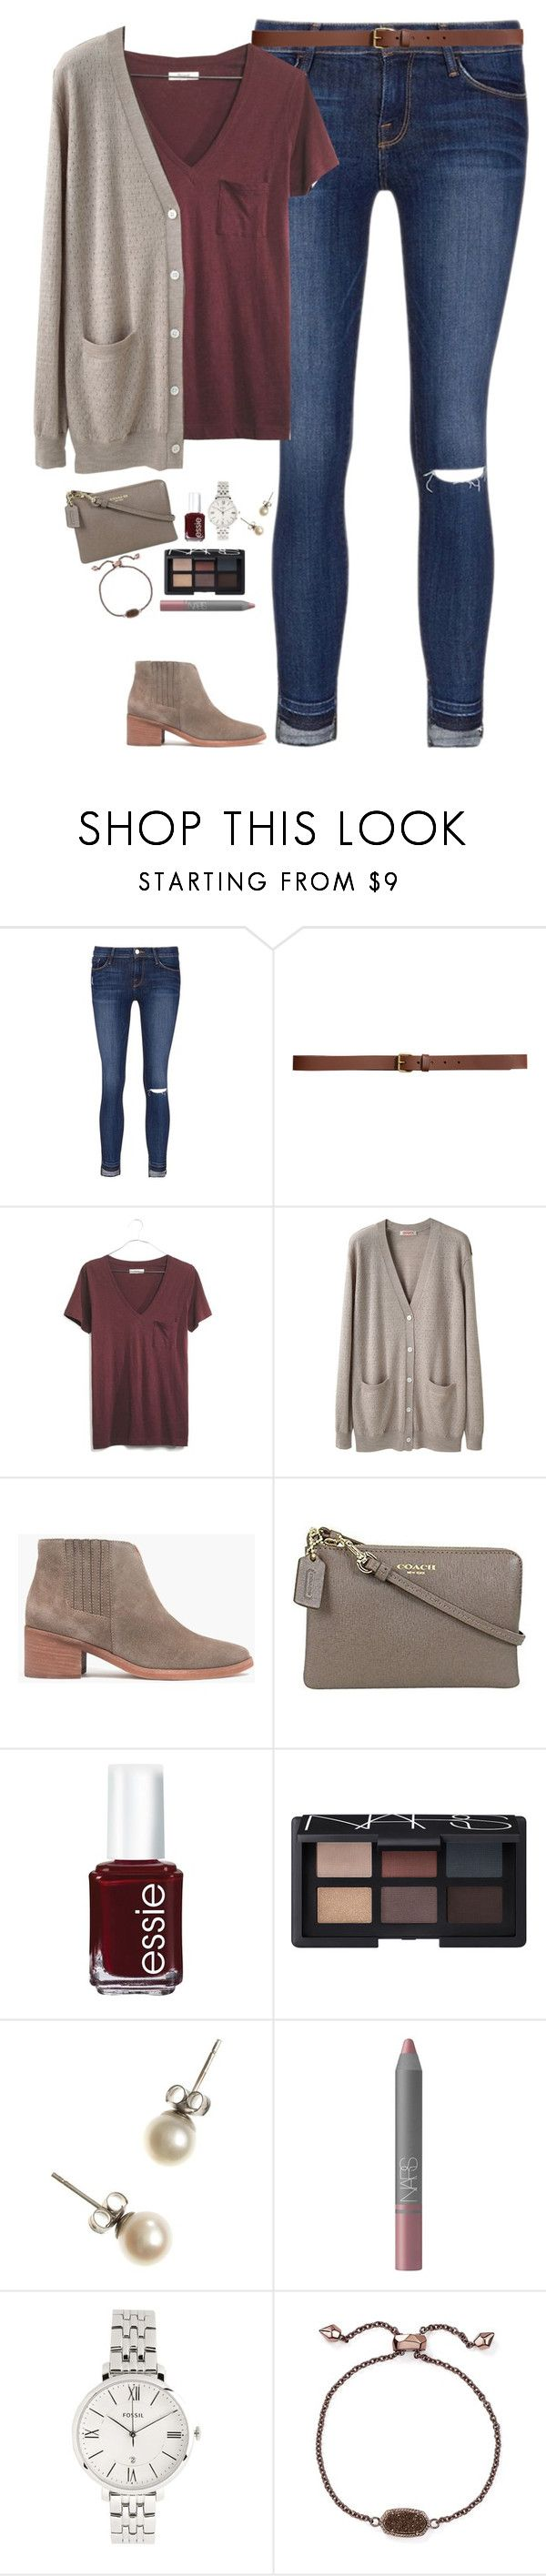 """V-neck tee, cardigan & ankle boots"" by steffiestaffie ❤ liked on Polyvore featuring Frame, H&M, Madewell, Organic by John Patrick, Coach, Essie, NARS Cosmetics, J.Crew, FOSSIL and Kendra Scott"